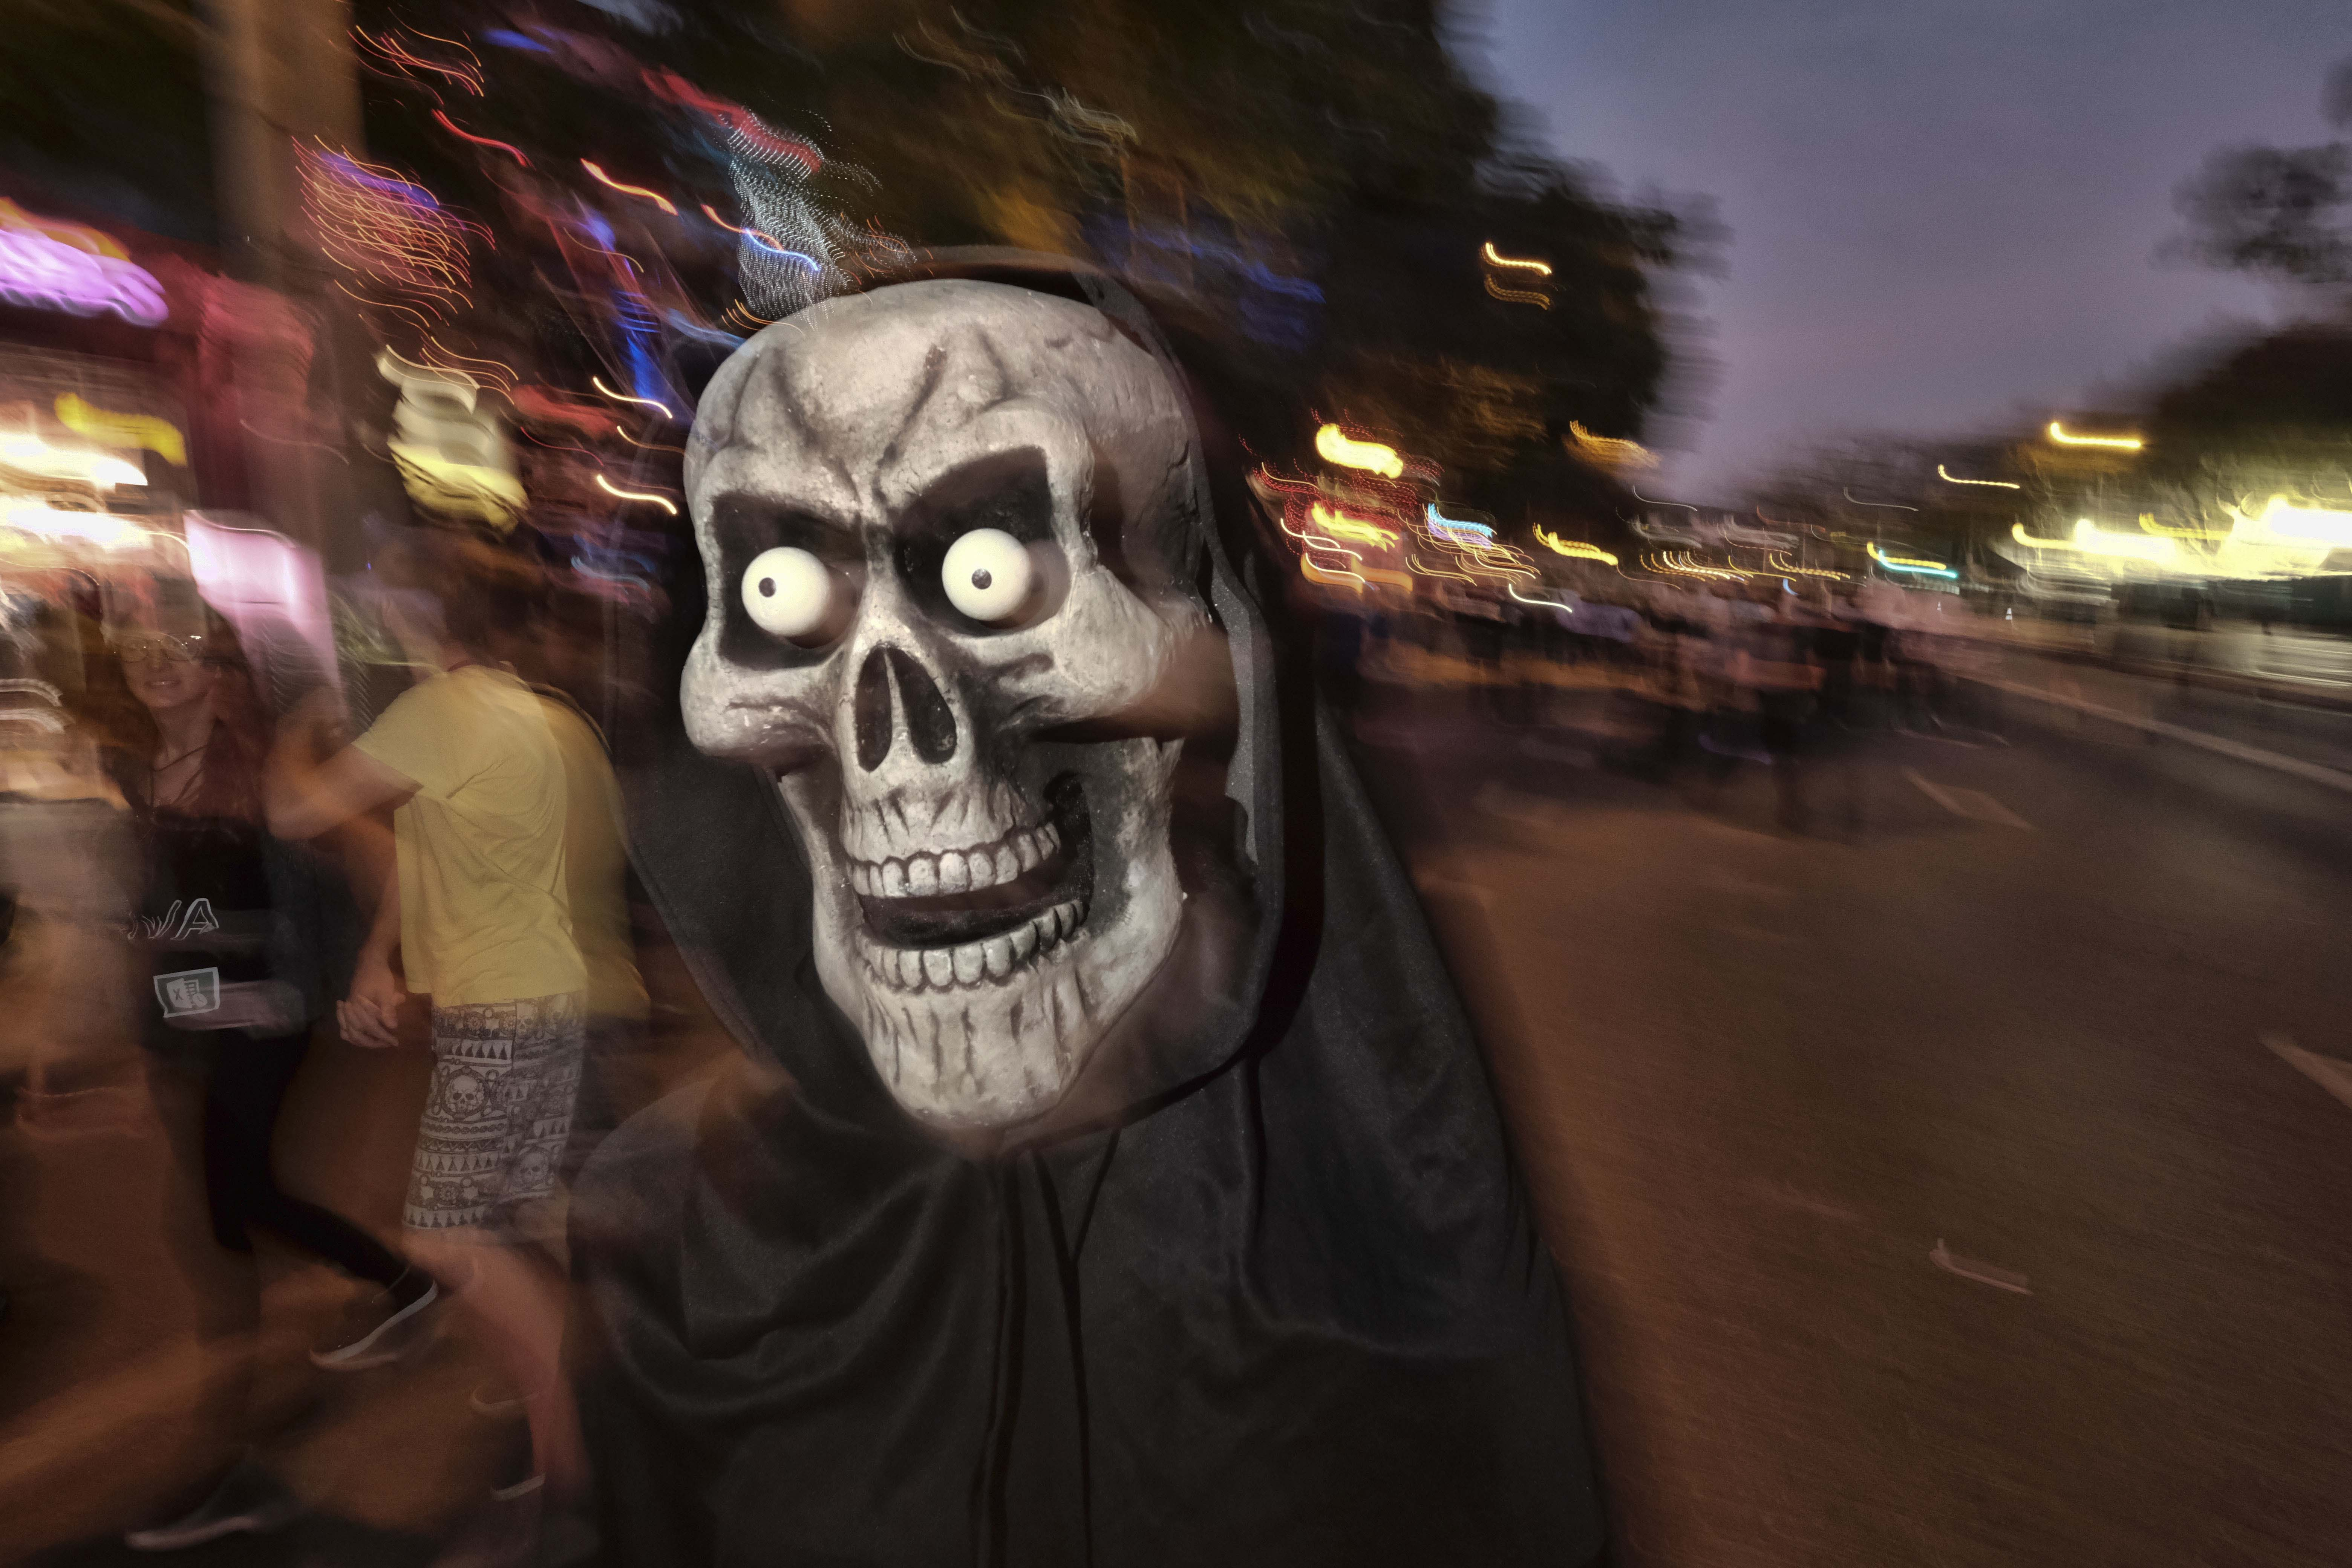 A person in costume joins parade goers down Santa Monica Blvd. in West Hollywood, Calif., during the West Hollywood Carnaval and Halloween Parade on Wed. Oct. 31, 2018. (AP Photo/Richard Vogel)